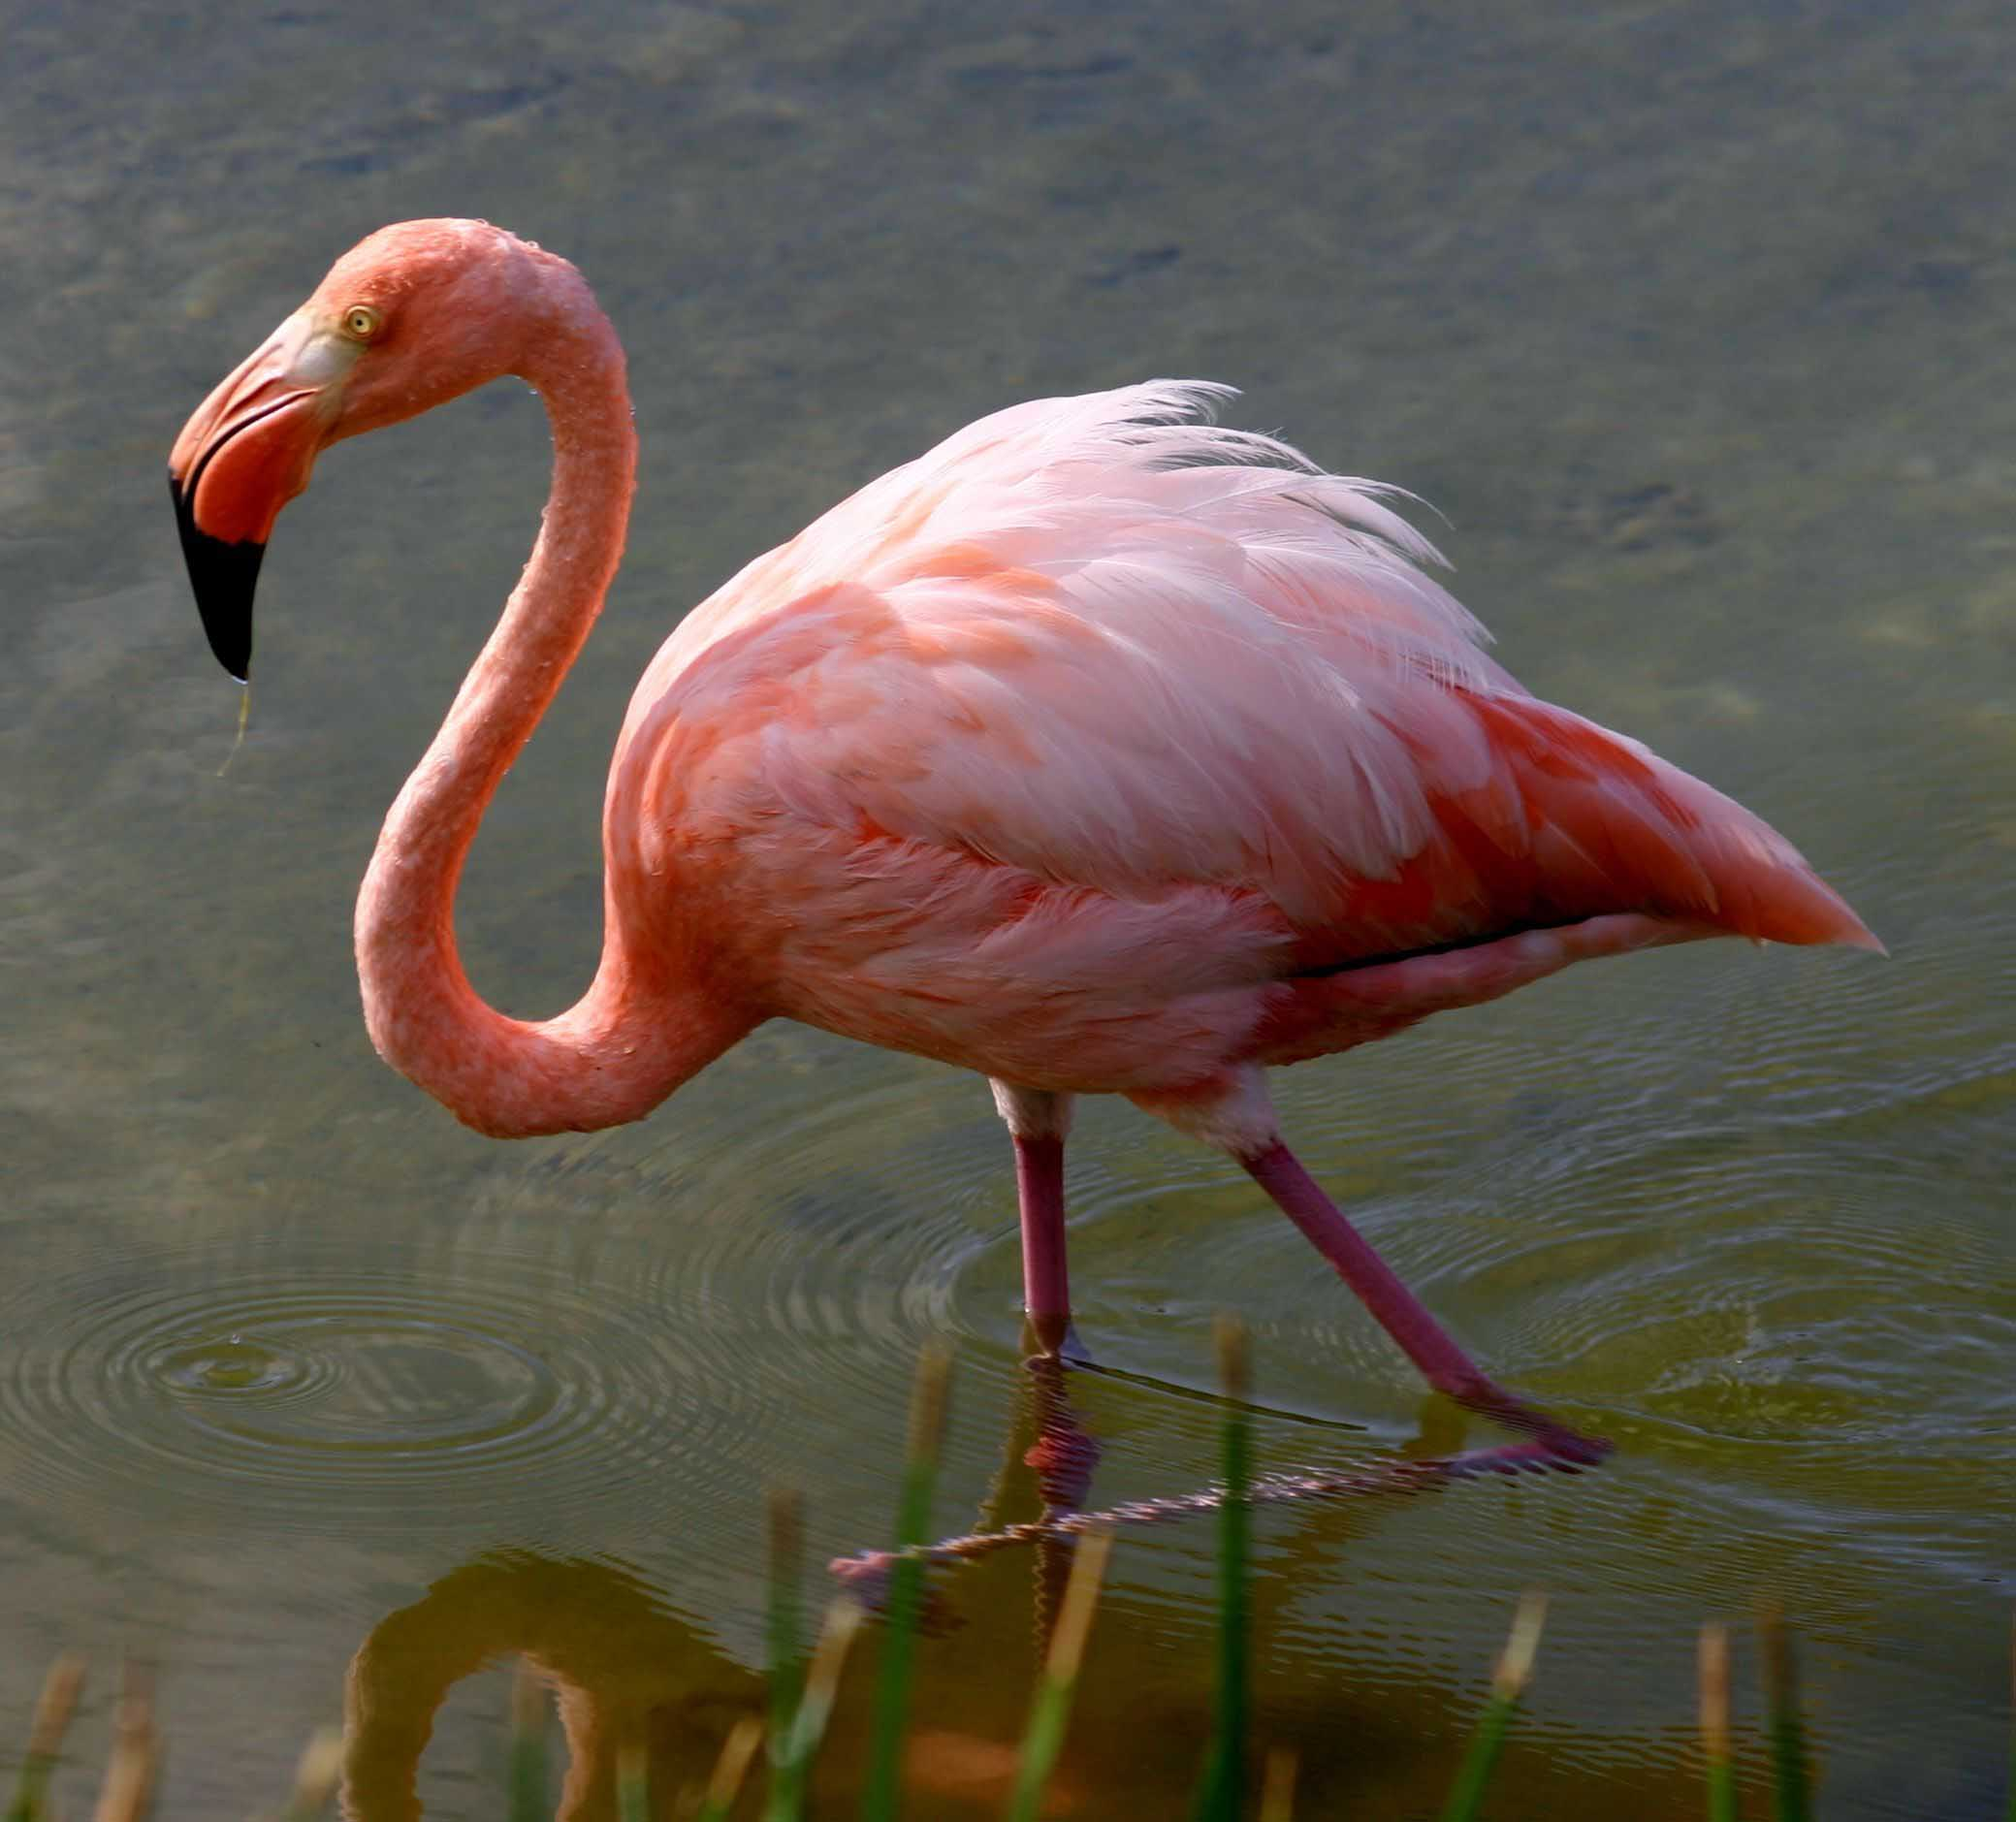 Greater flamingo hd wallpapers